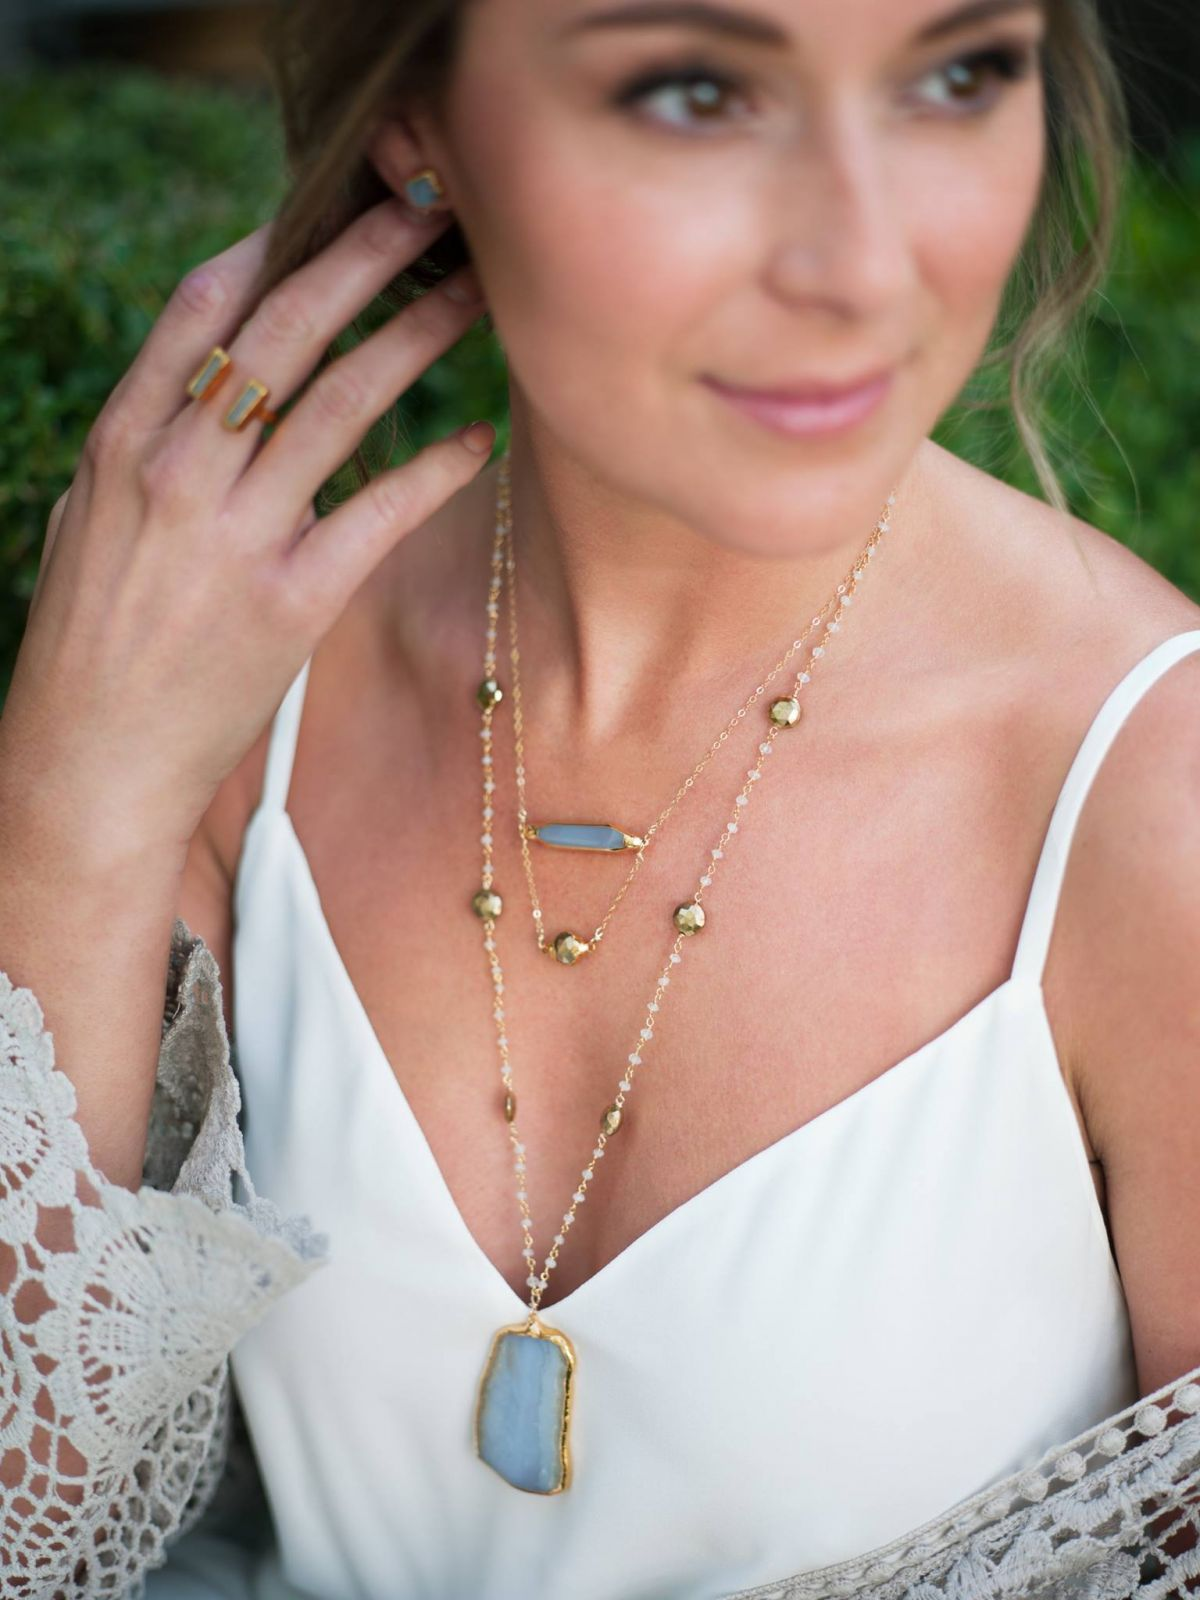 ALEXA VEGA for Robyn Rhodes Jewelry, Spring/Summer 2016